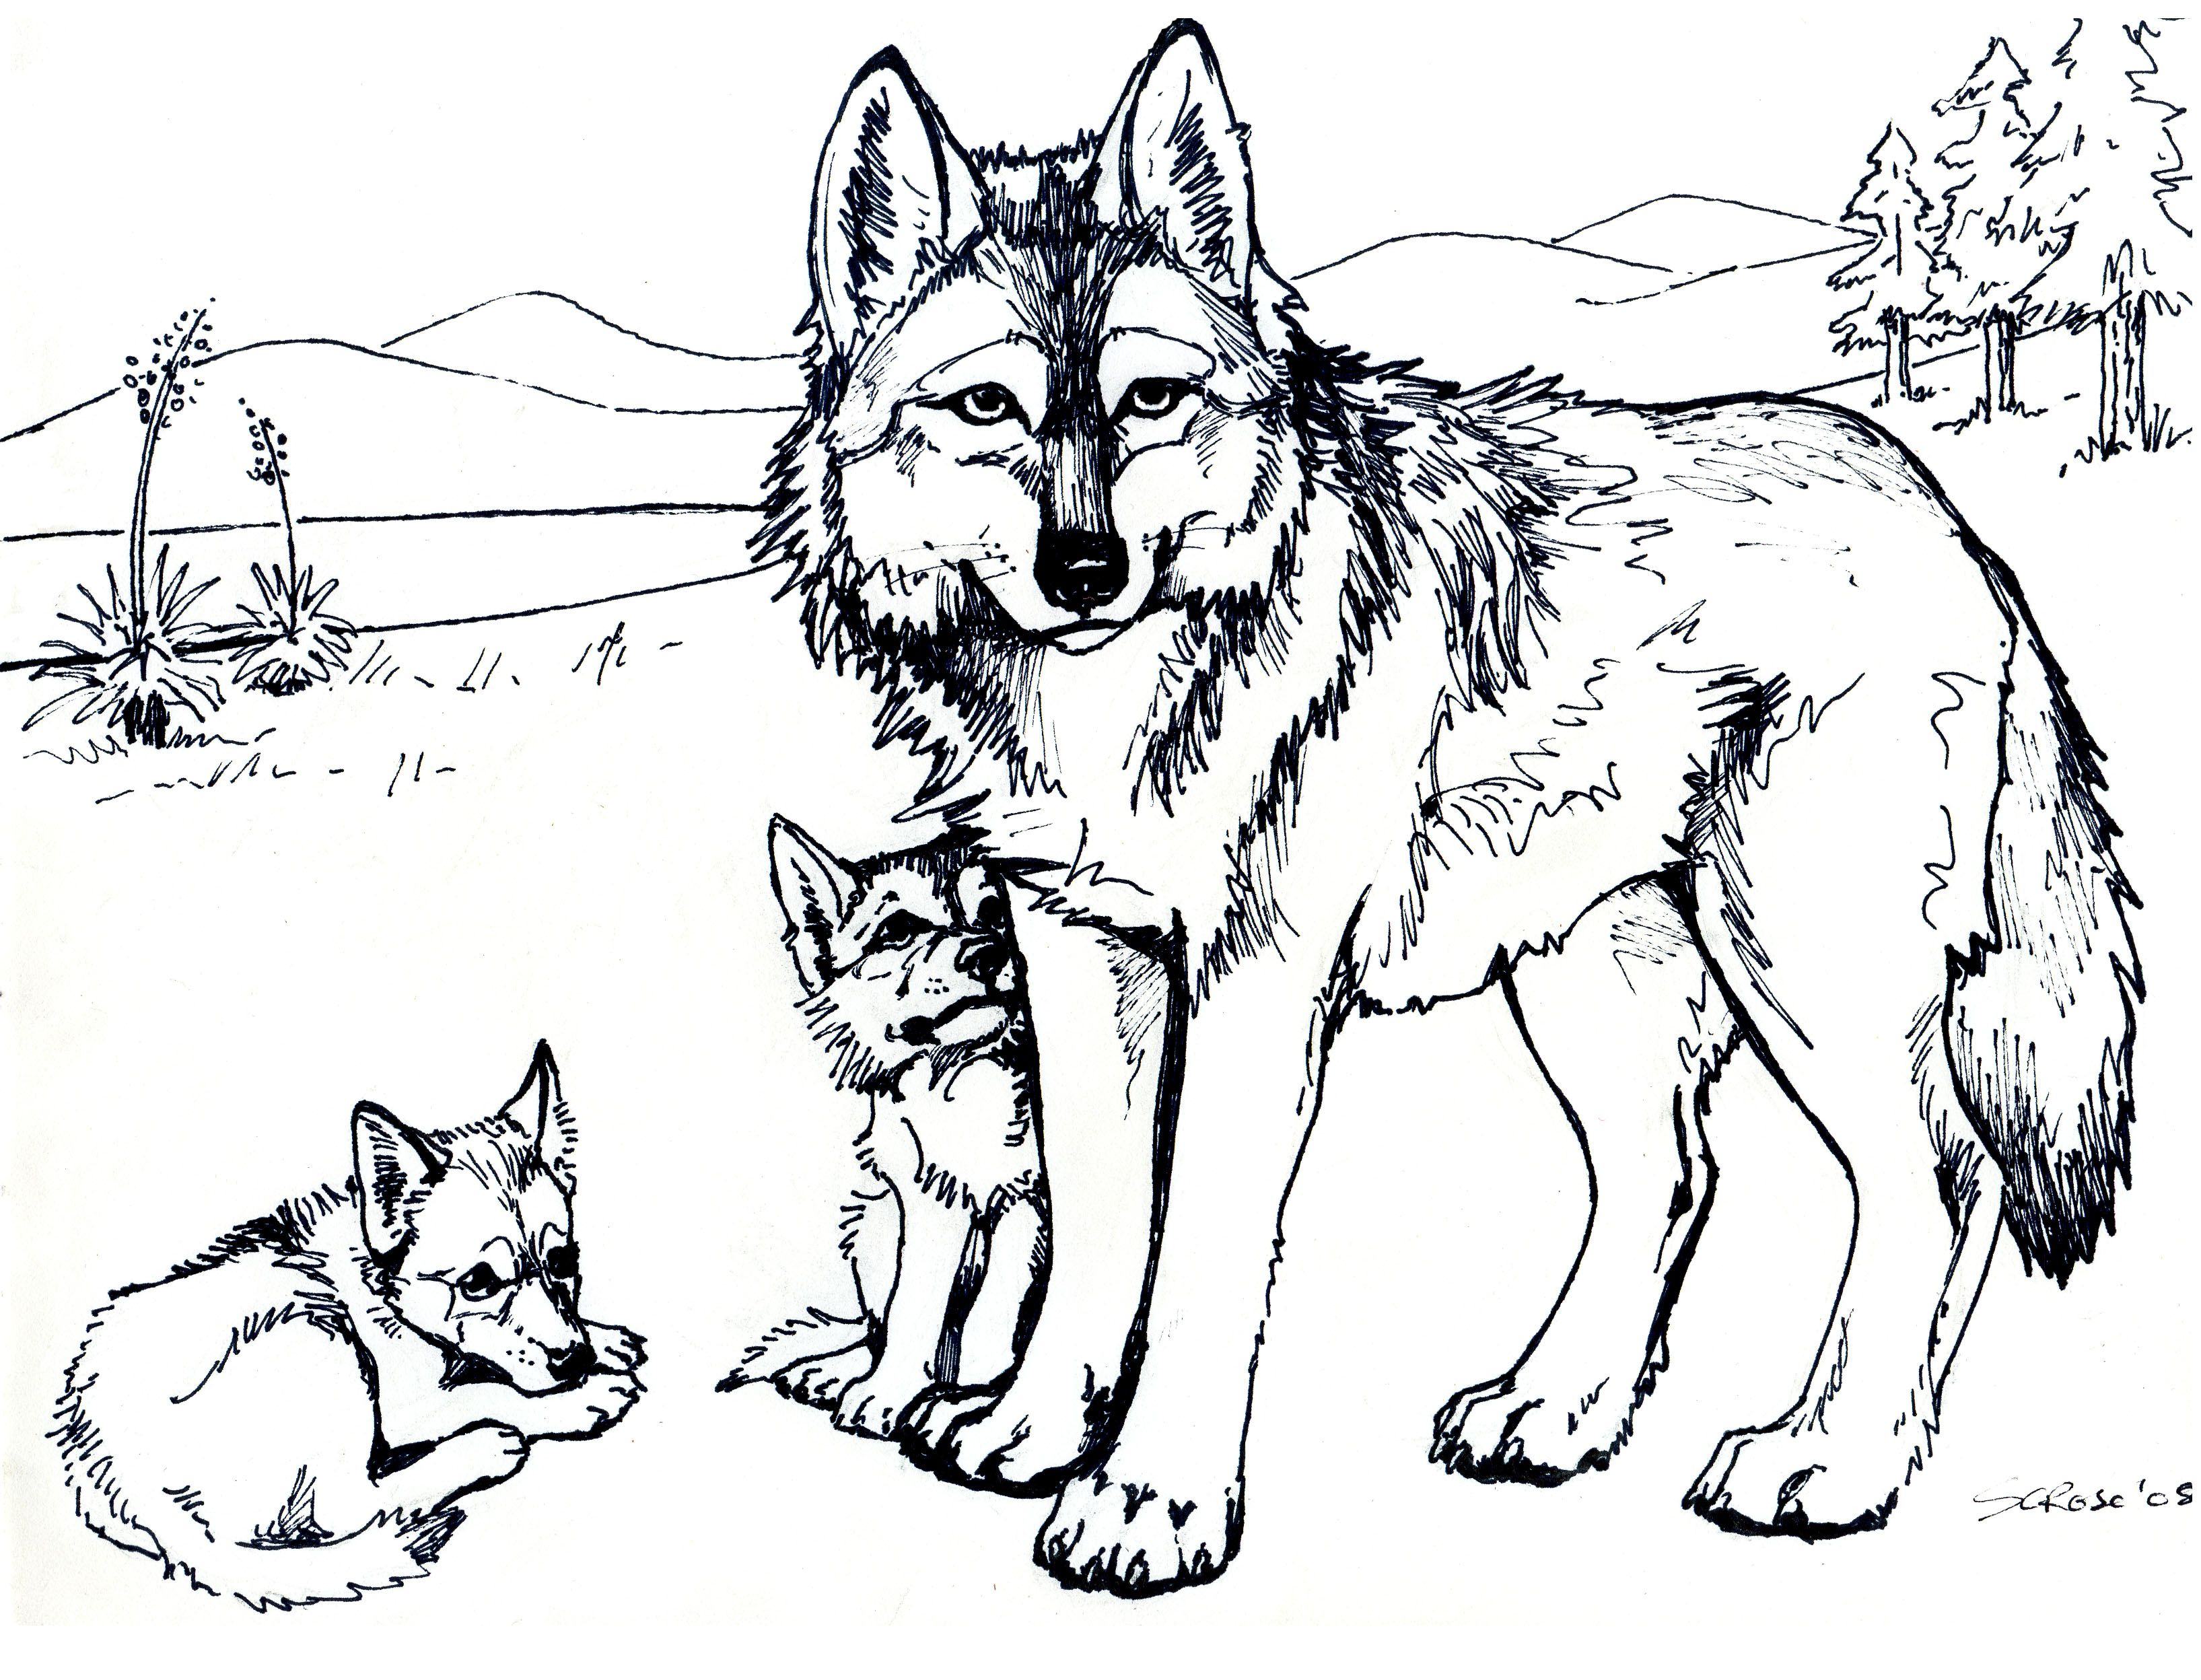 Free Printable Wolf Coloring Pages For Kids | Eden | Pinterest - Free Printable Realistic Animal Coloring Pages